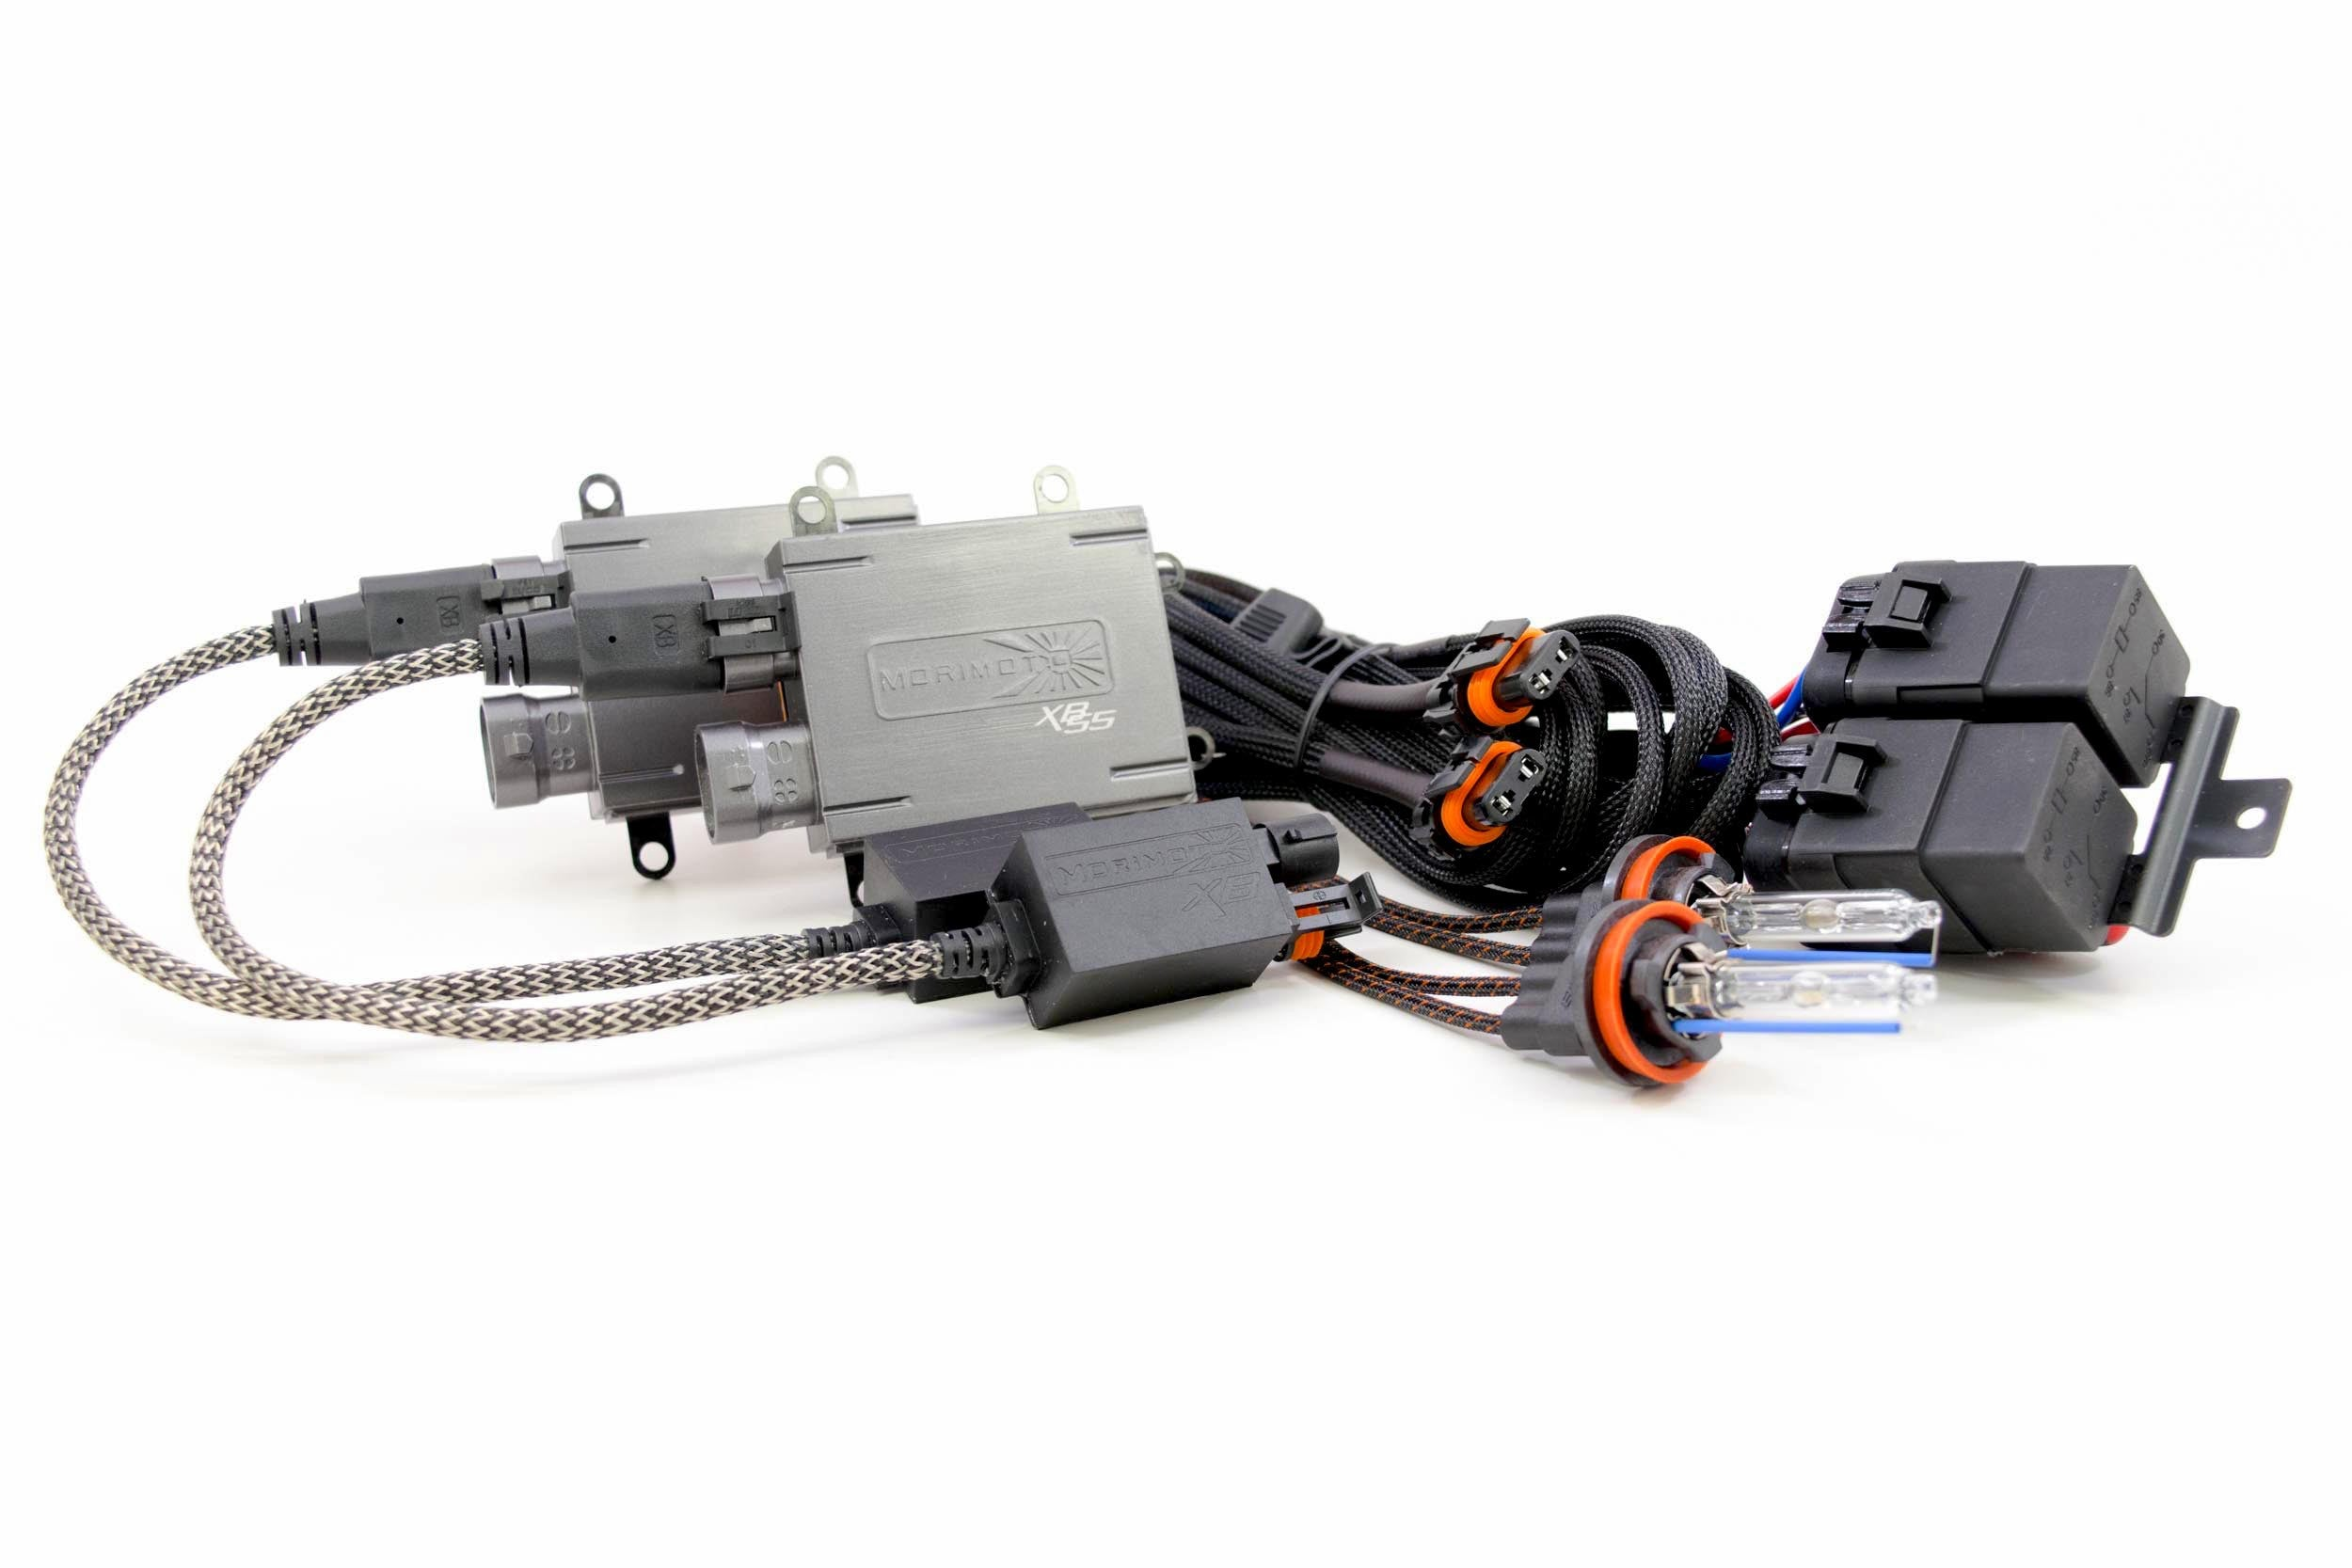 H7 Morimoto Elite HID Kit System With XB35 35W Ballasts and XB35 H7 5000K Bulbs with Canbus Harness